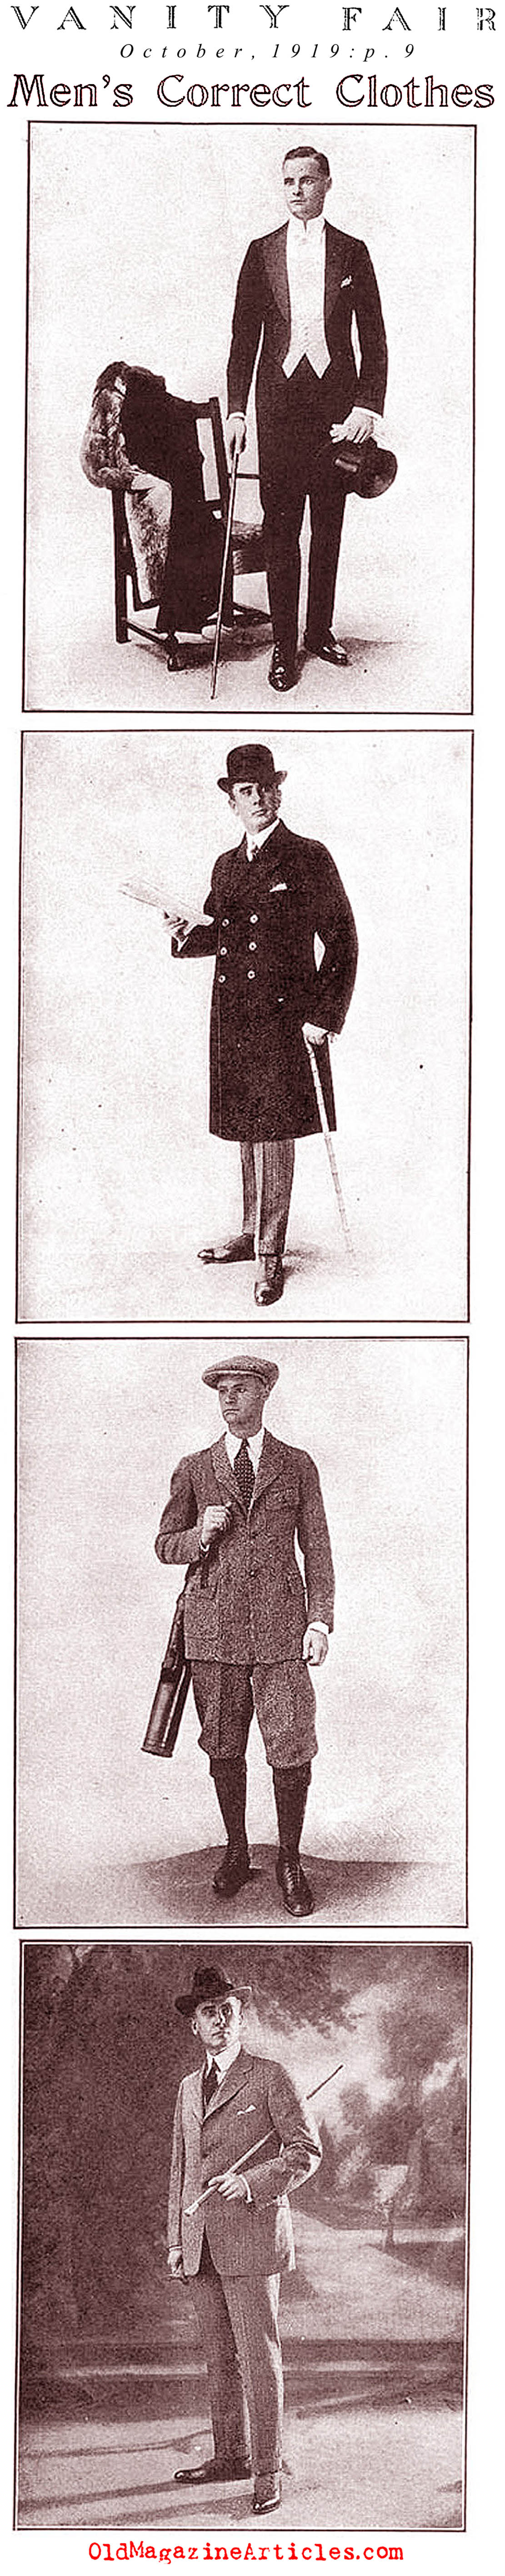 Men's Correct Clothes (Vanity Fair Magazine, 1919)